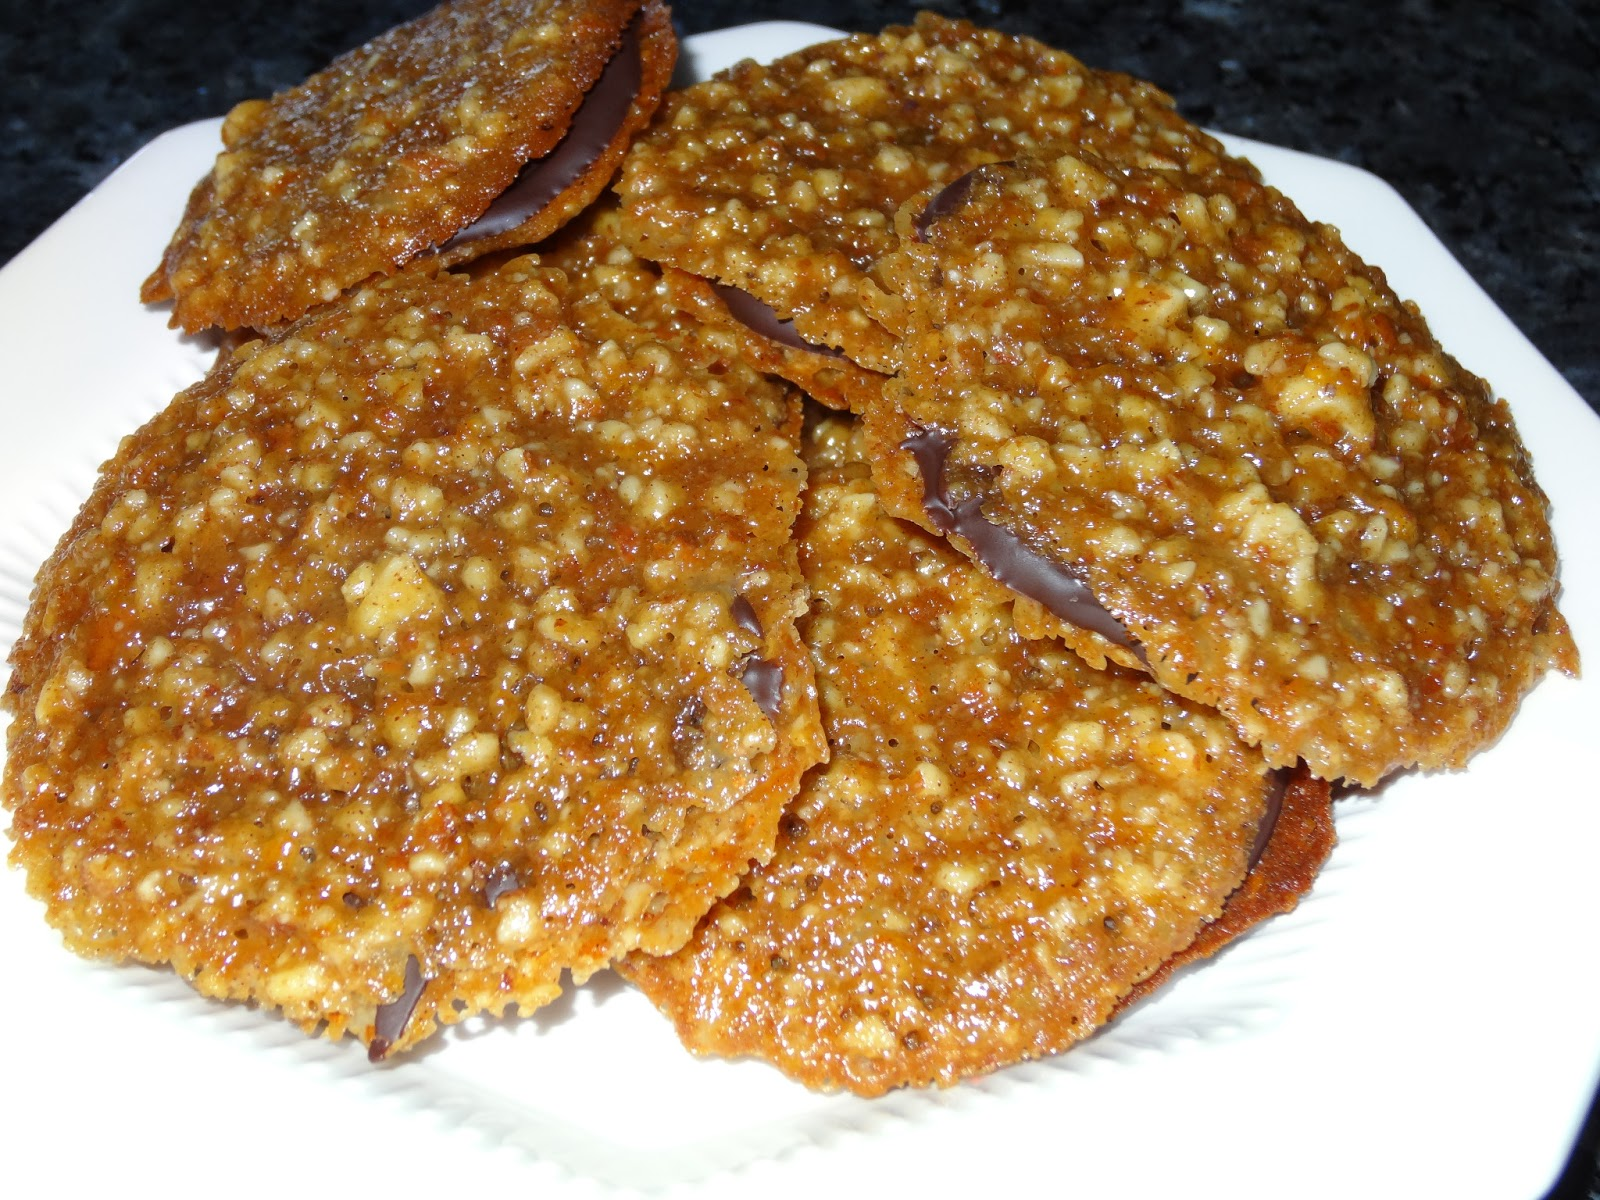 Joni Loves To Cook: Almond Orange Lace Cookies with Dark Chocolate ...